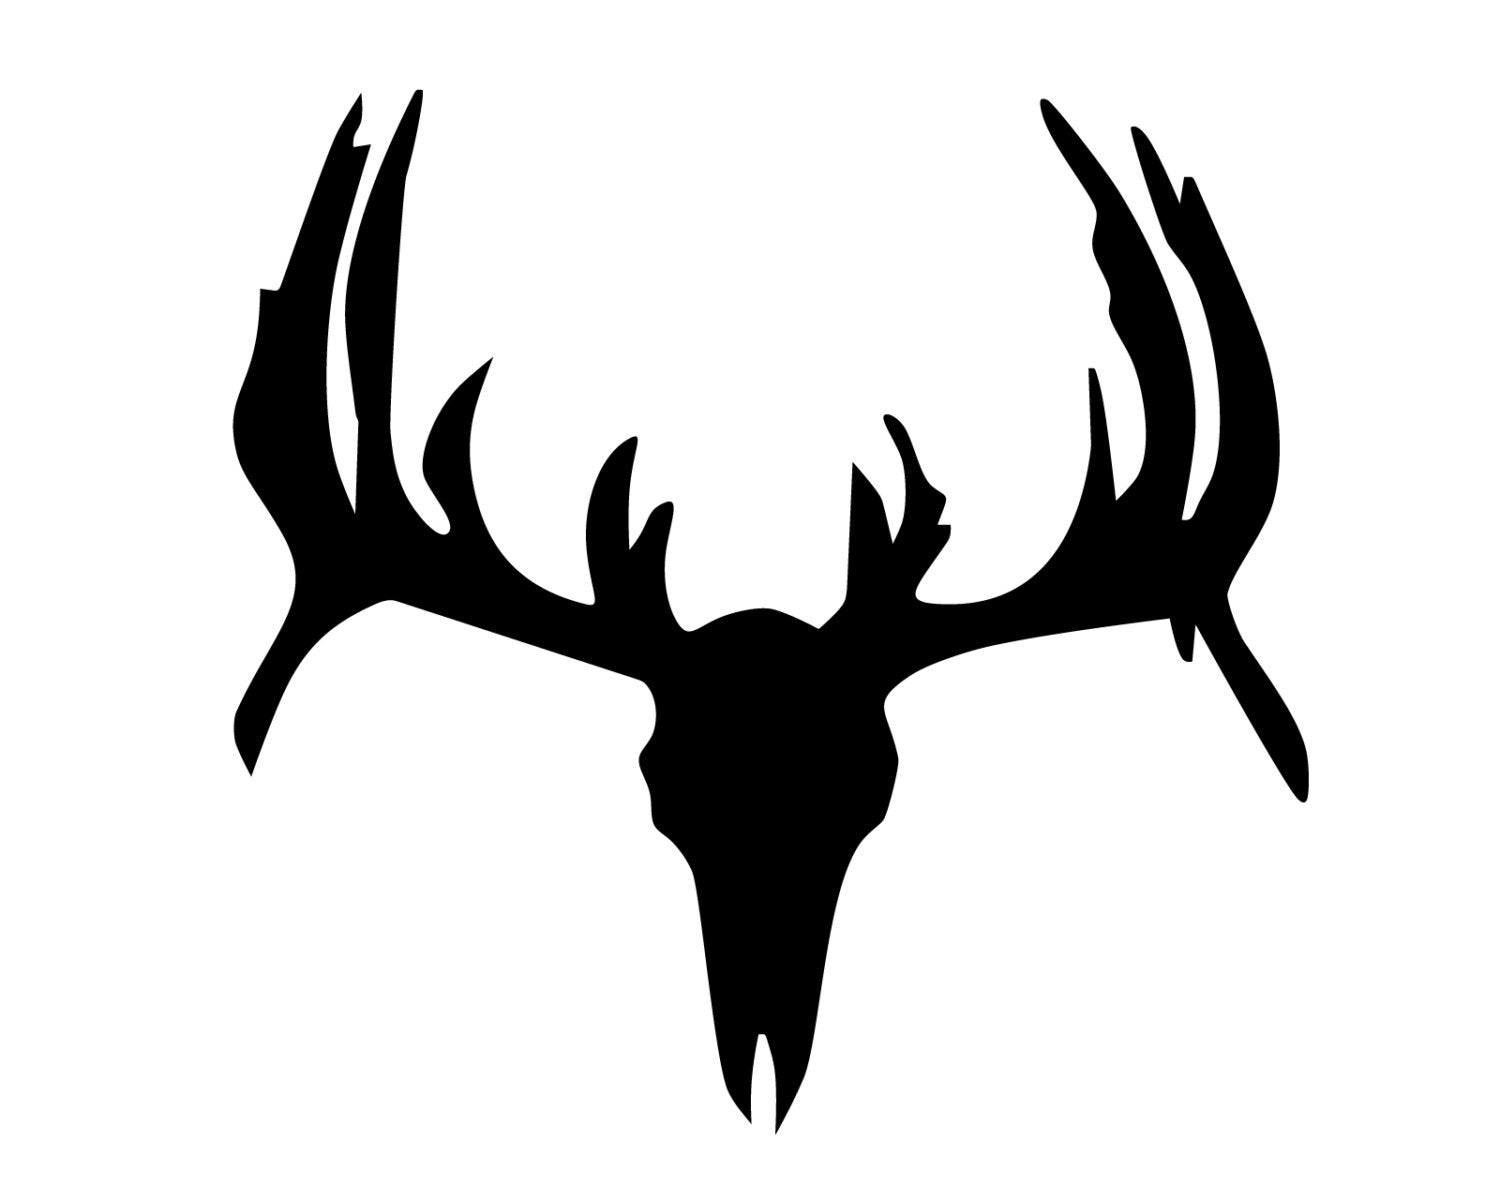 Hunting and fishing vinyl decal deer hunter head or skull for Hunting and fishing decals